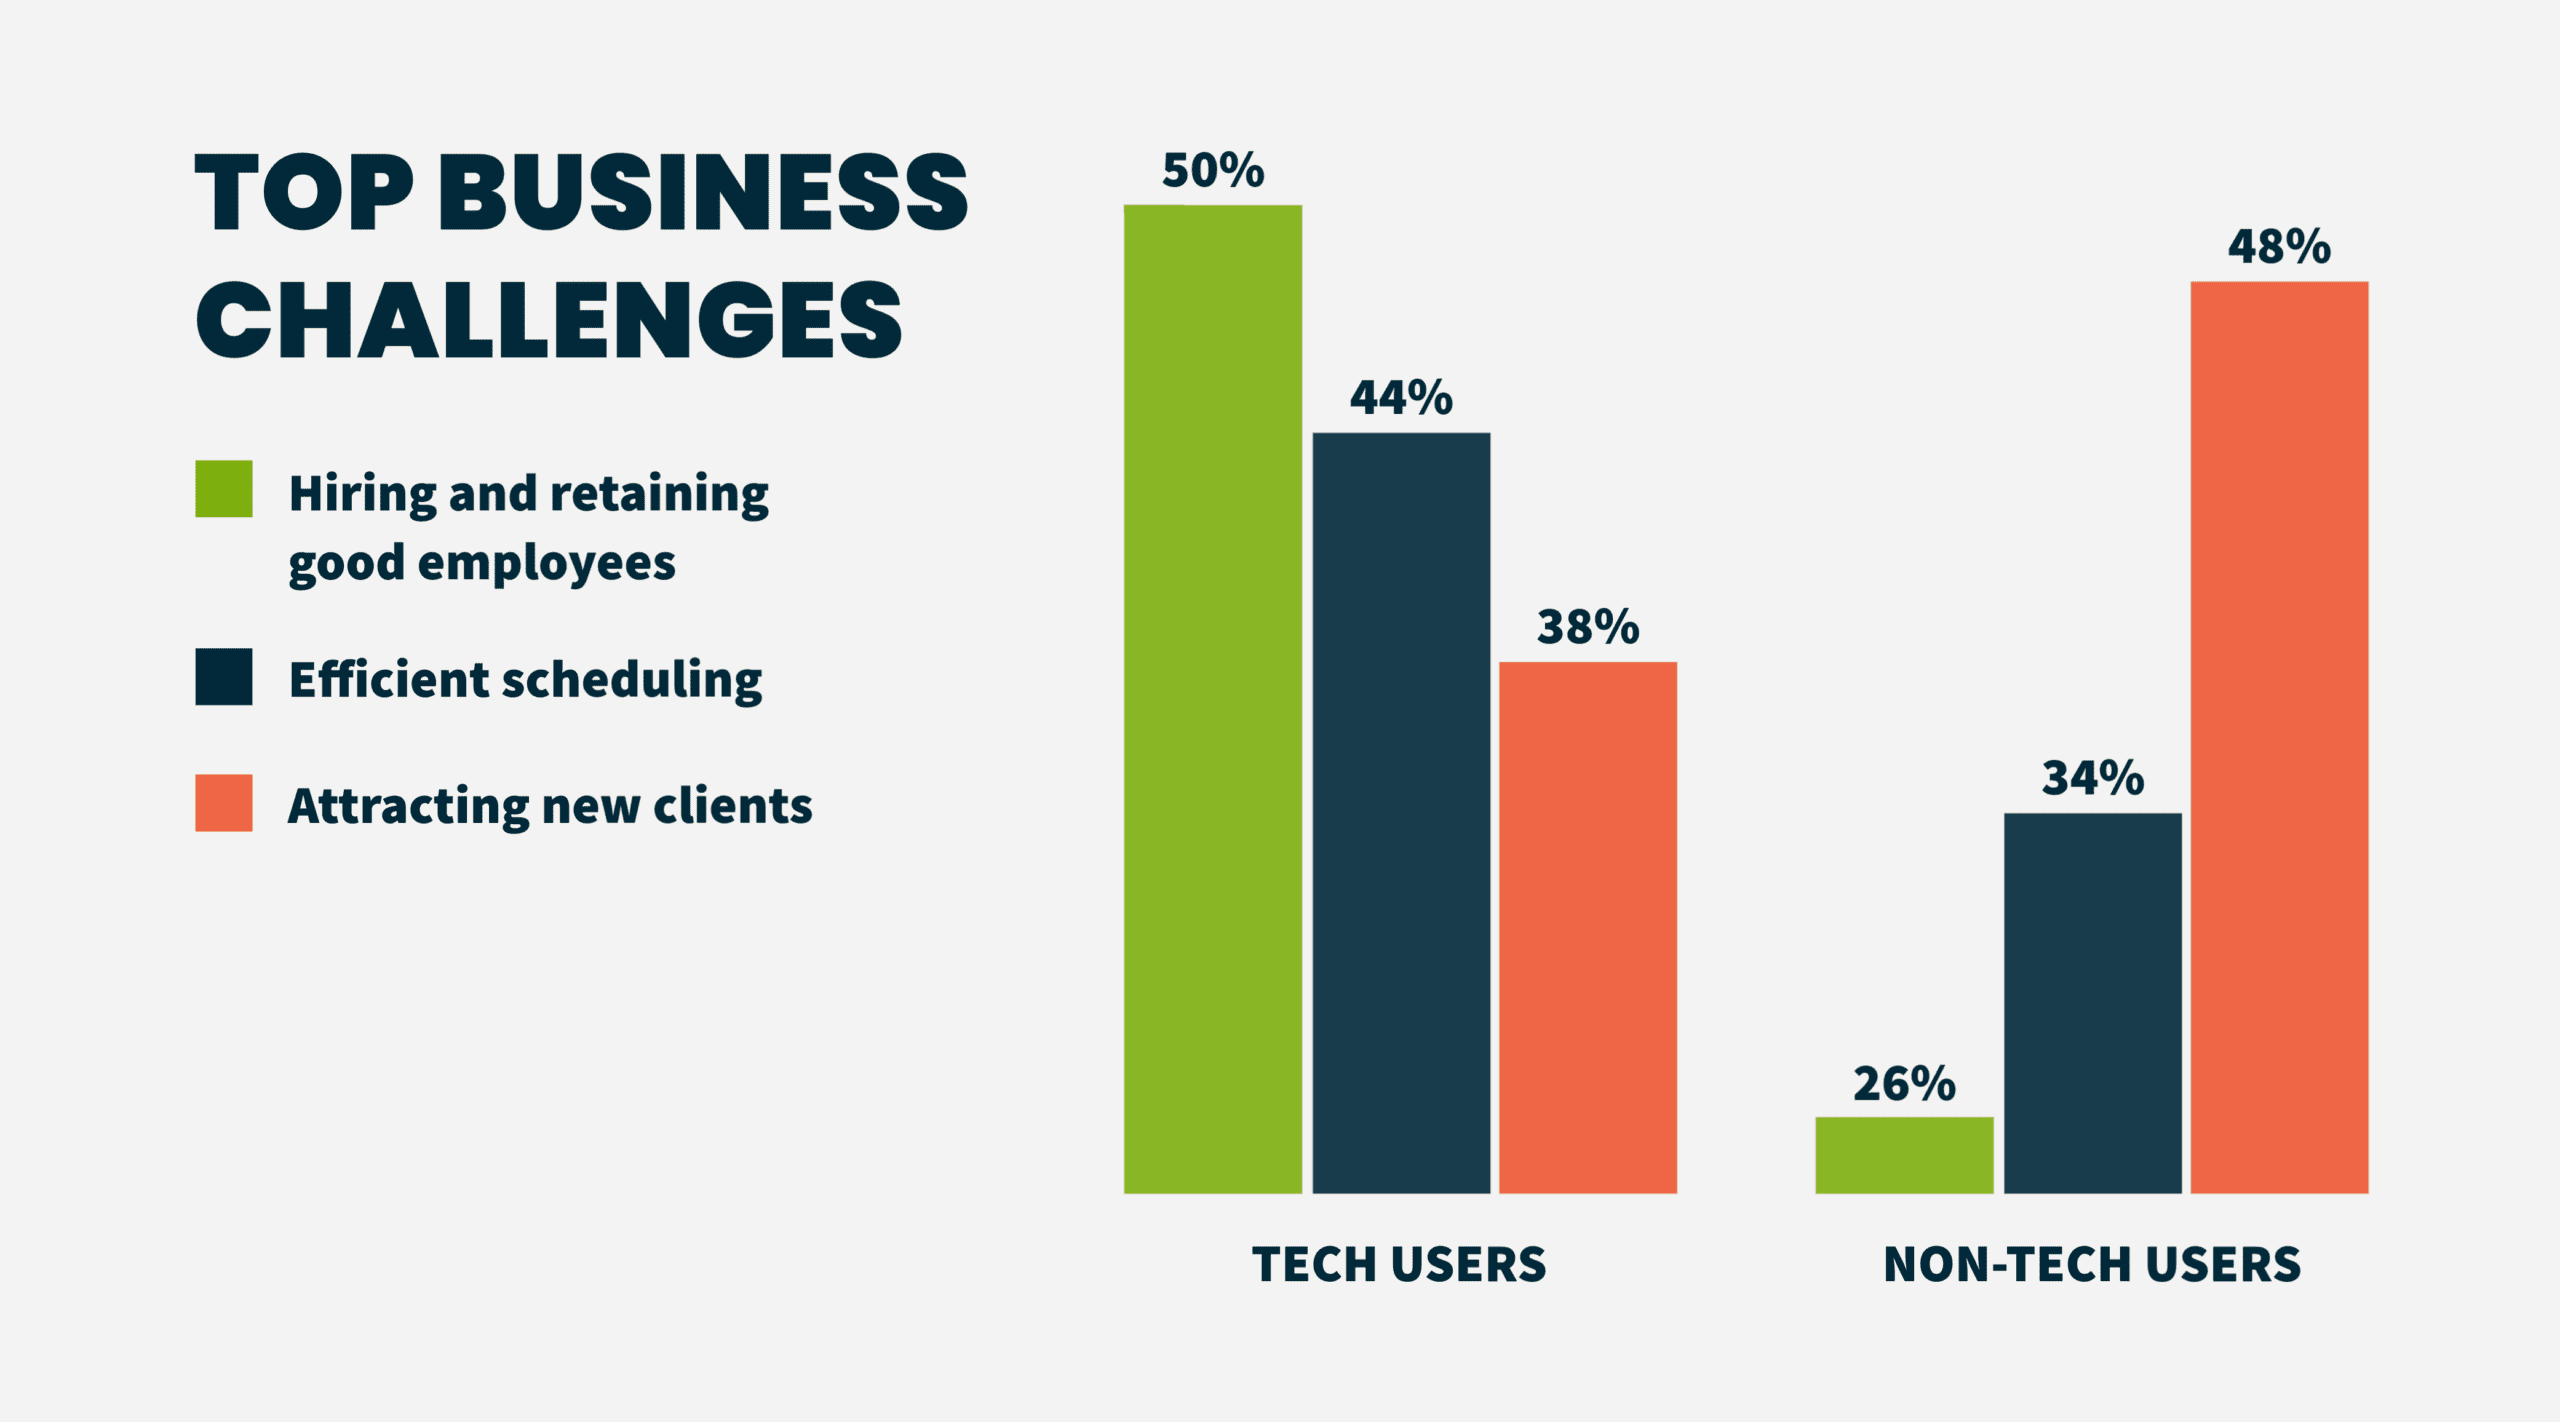 Top Home Service Business Challenges 2020